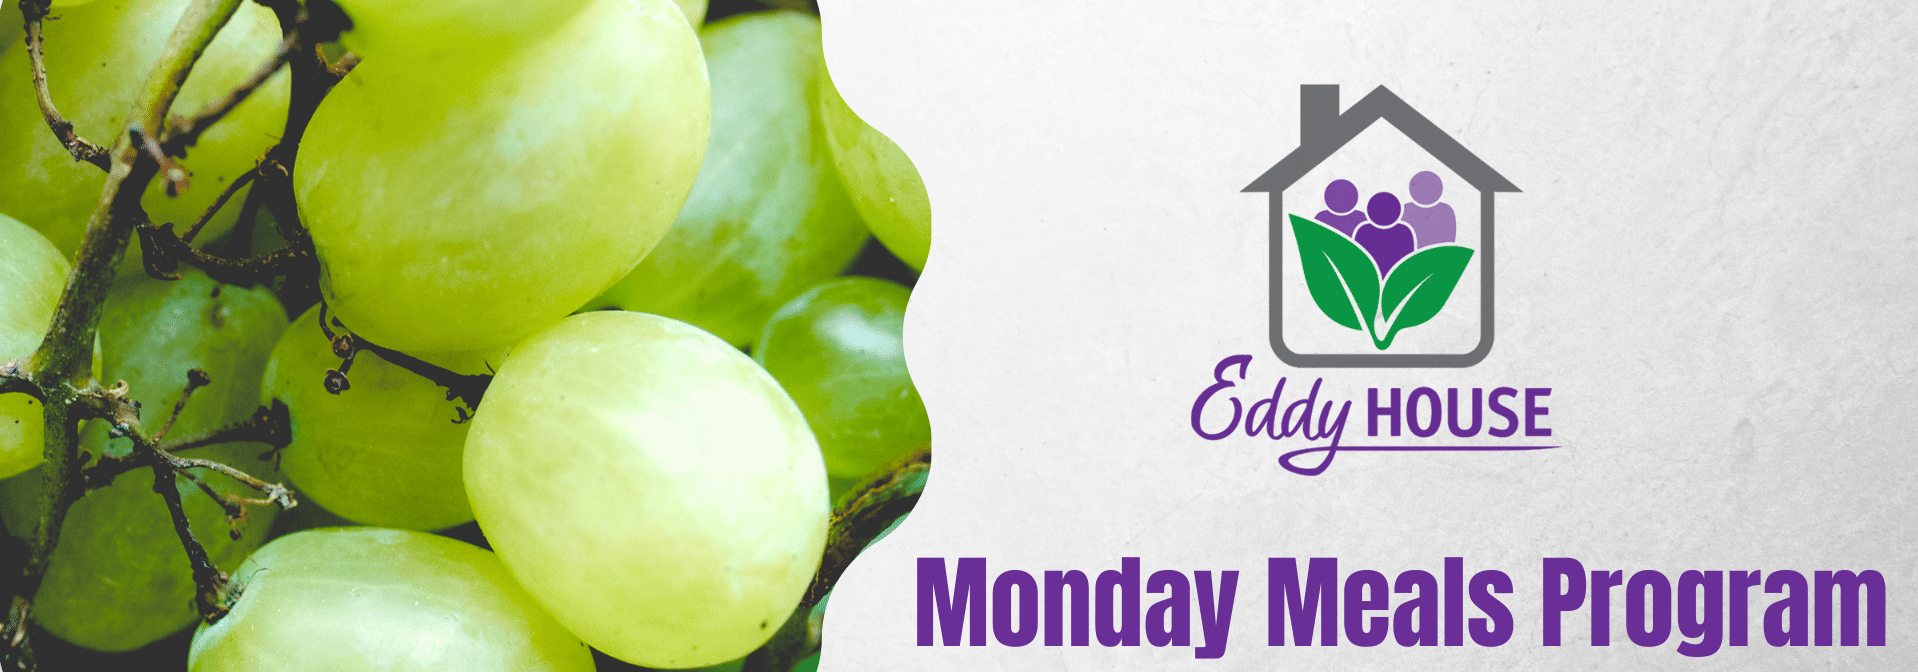 Eddy House and Good Shepherd's Monday Meals Program